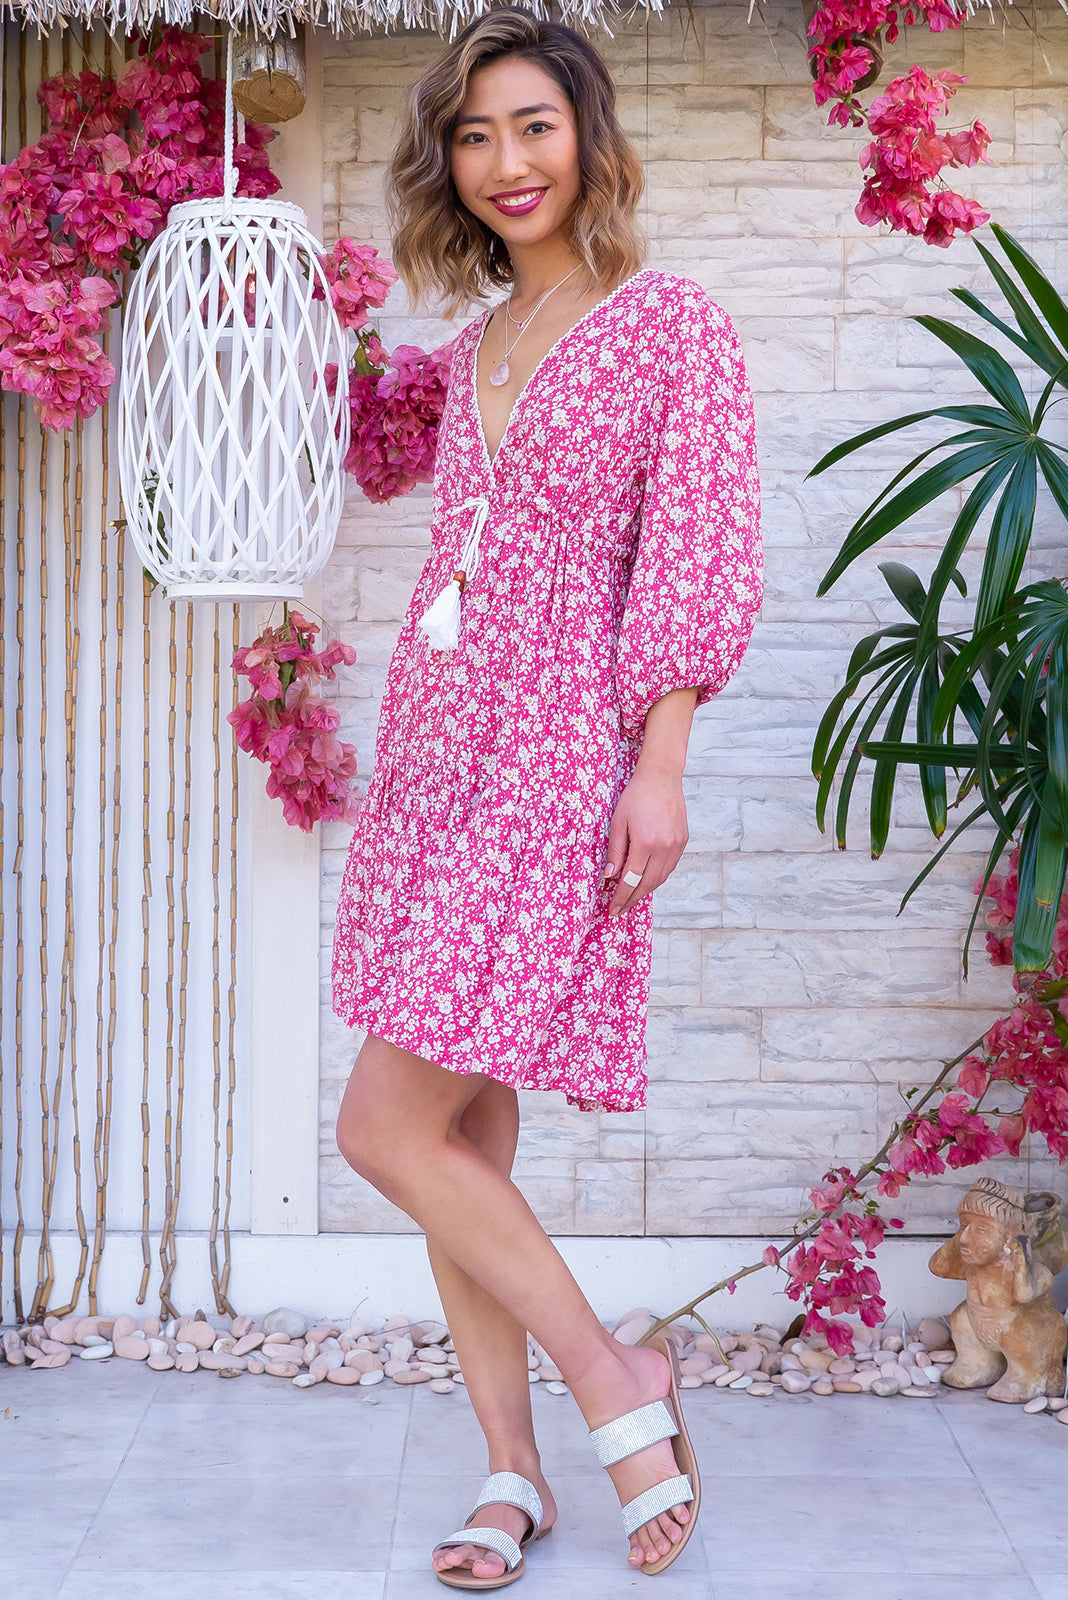 The Mariette Strawberry Rambles Dress Features deep V neckline with lace detail, puff sleeves, side pockets, adjustable drawstring waist and 100% rayon in pastel strawberry red base with white and yellow floral print.